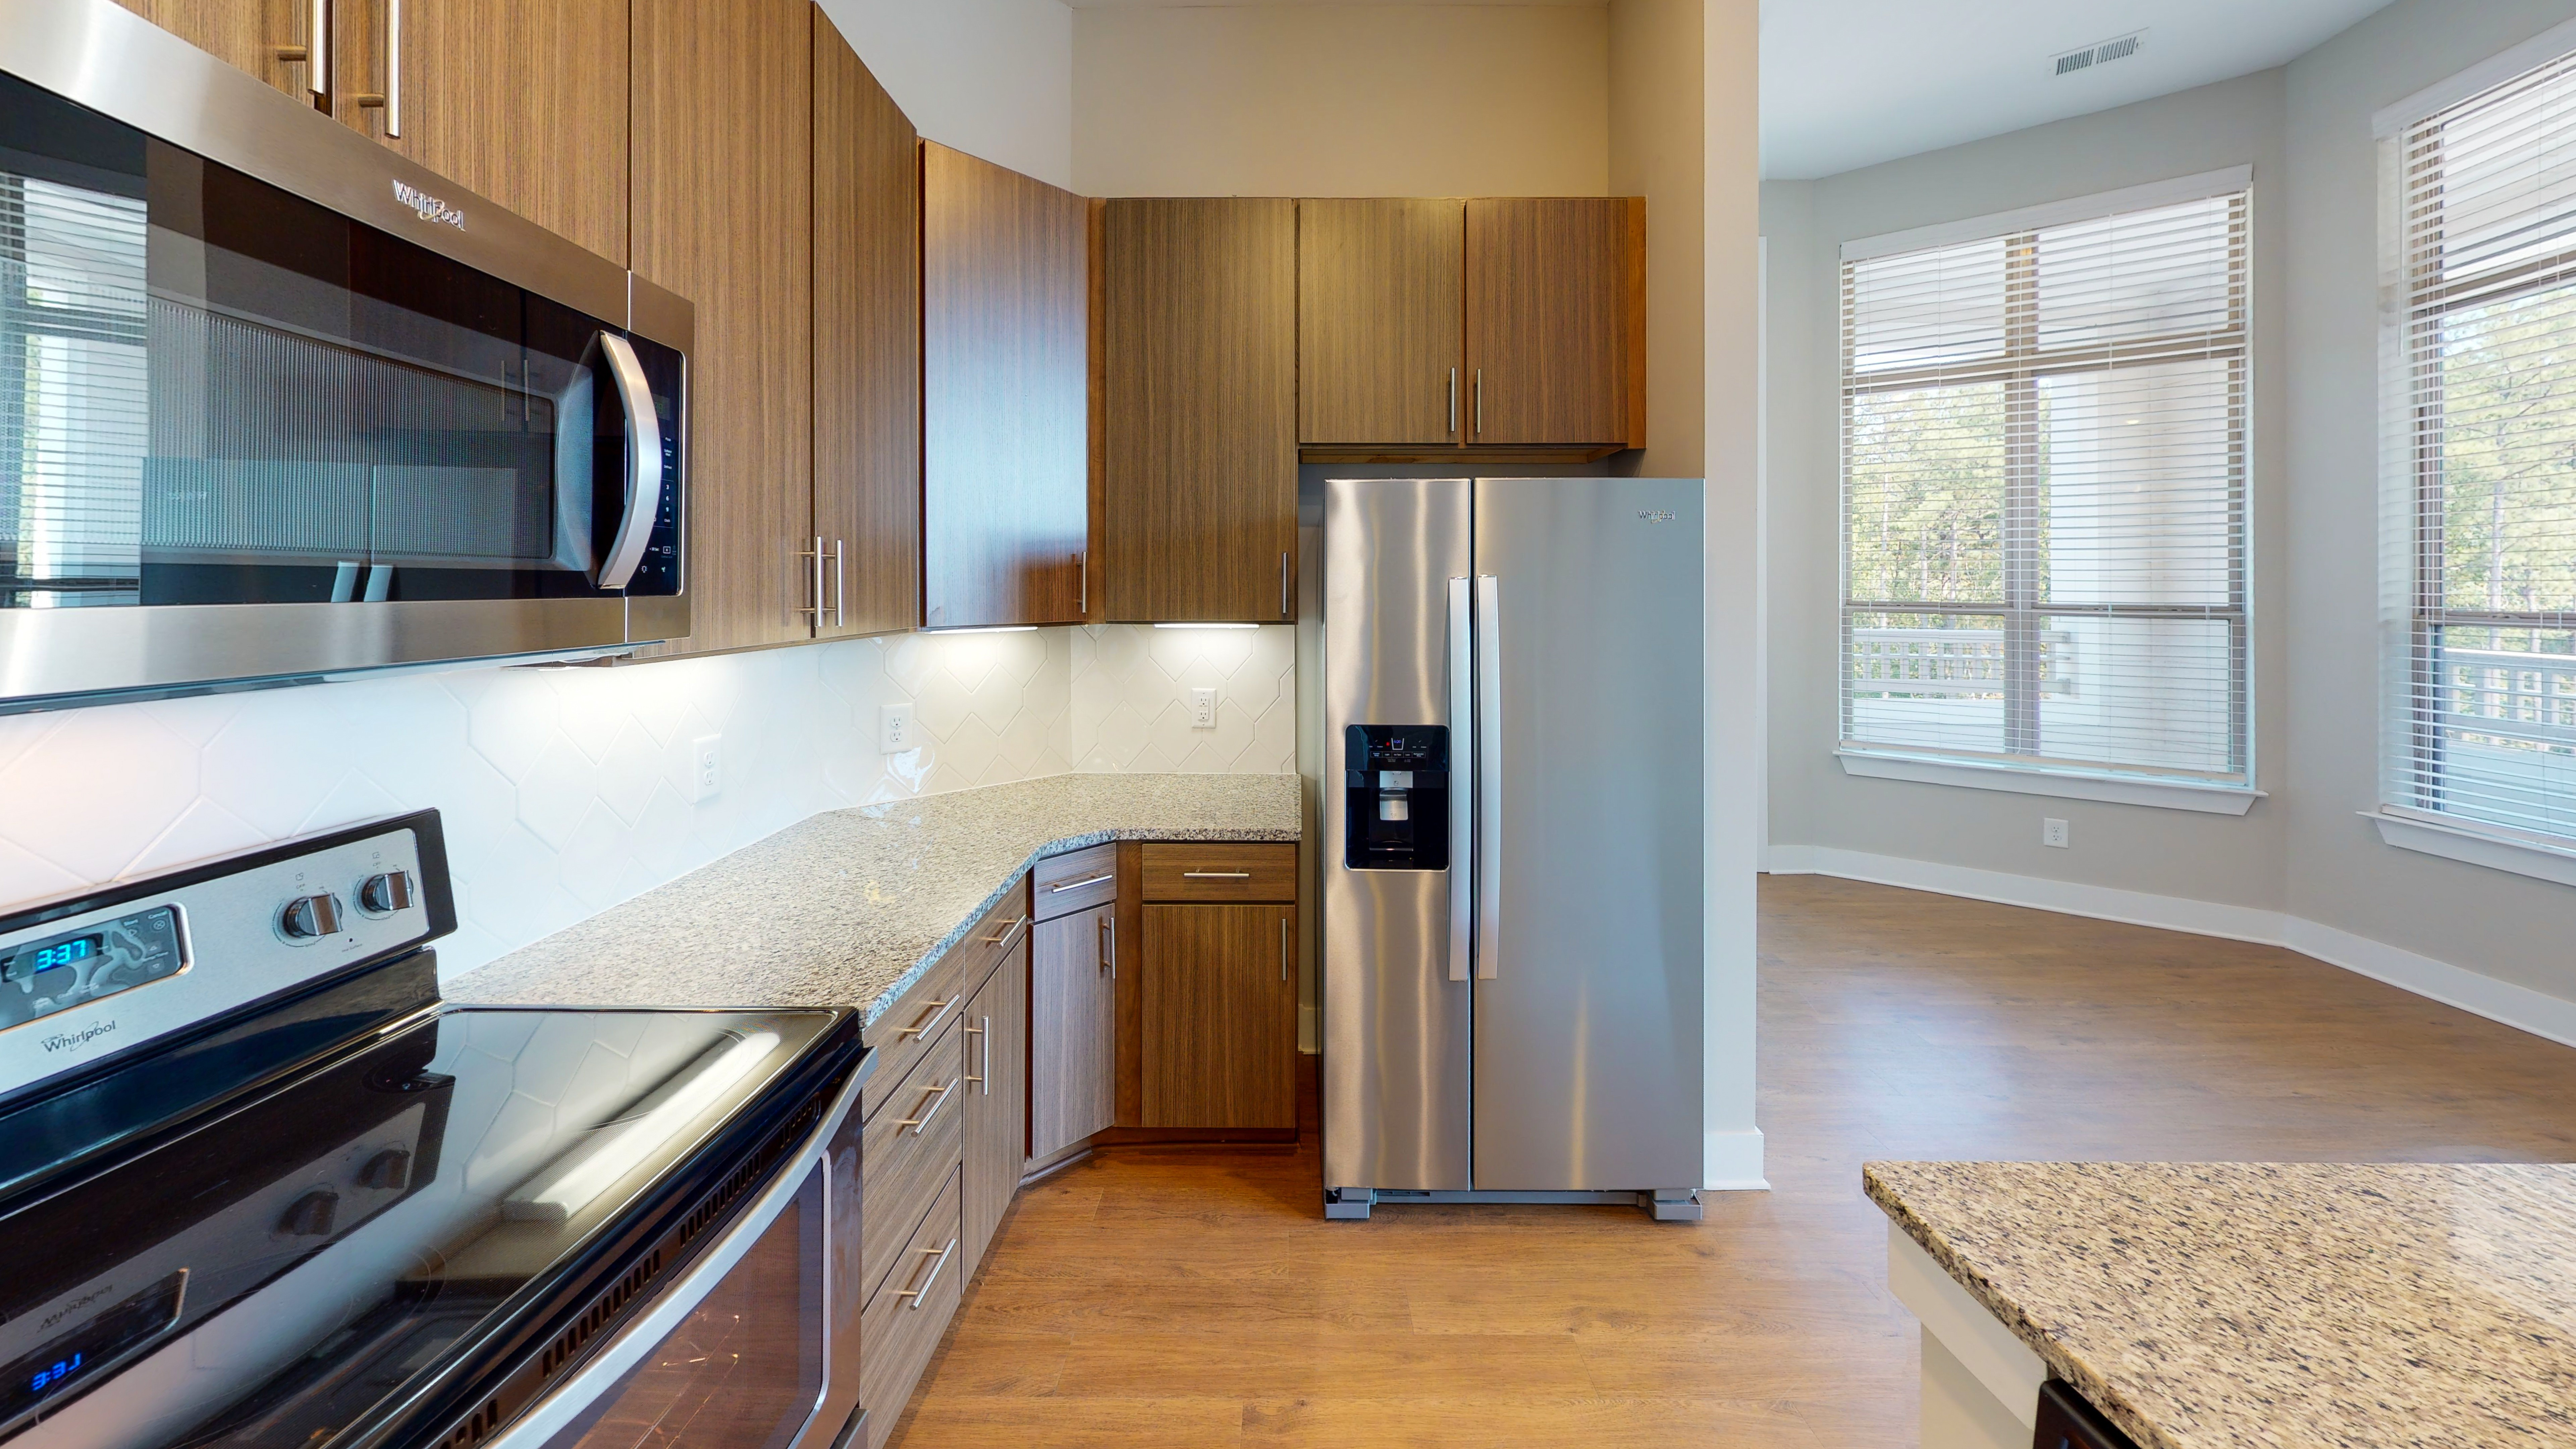 Apartments Near Shaw Cortland Cary for Shaw University Students in Raleigh, NC